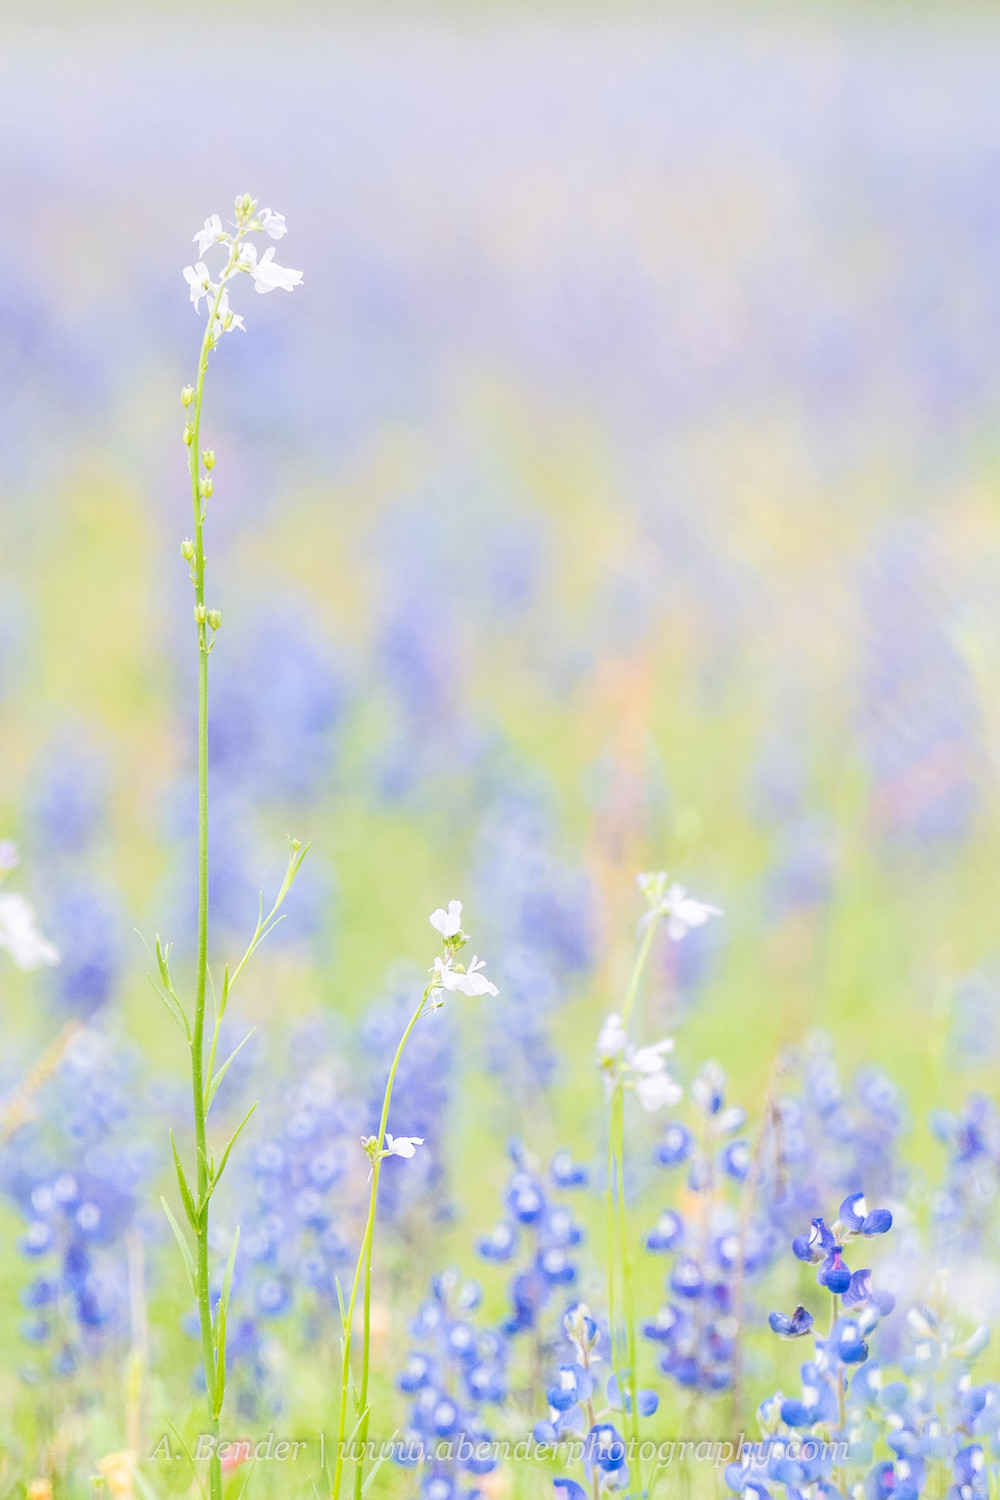 Close up of spring wildflowers in central Texas | A Bender Photography LLC